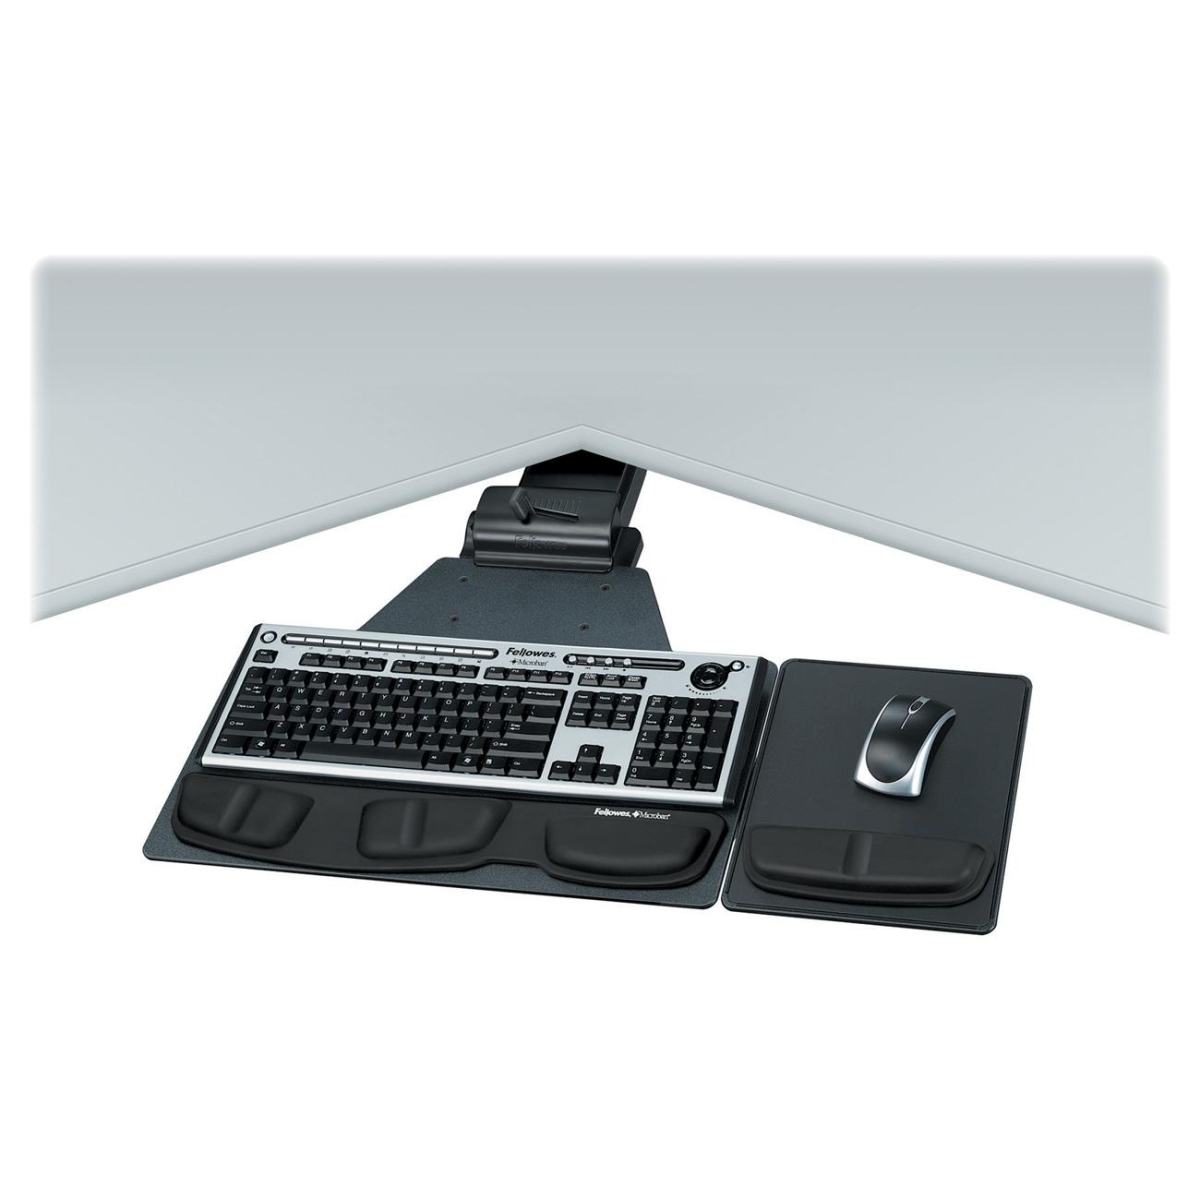 Professional Series Corner Executive Keyboard Tray - 5.8 inch x 28.2 inch x 21.3 inch - Black